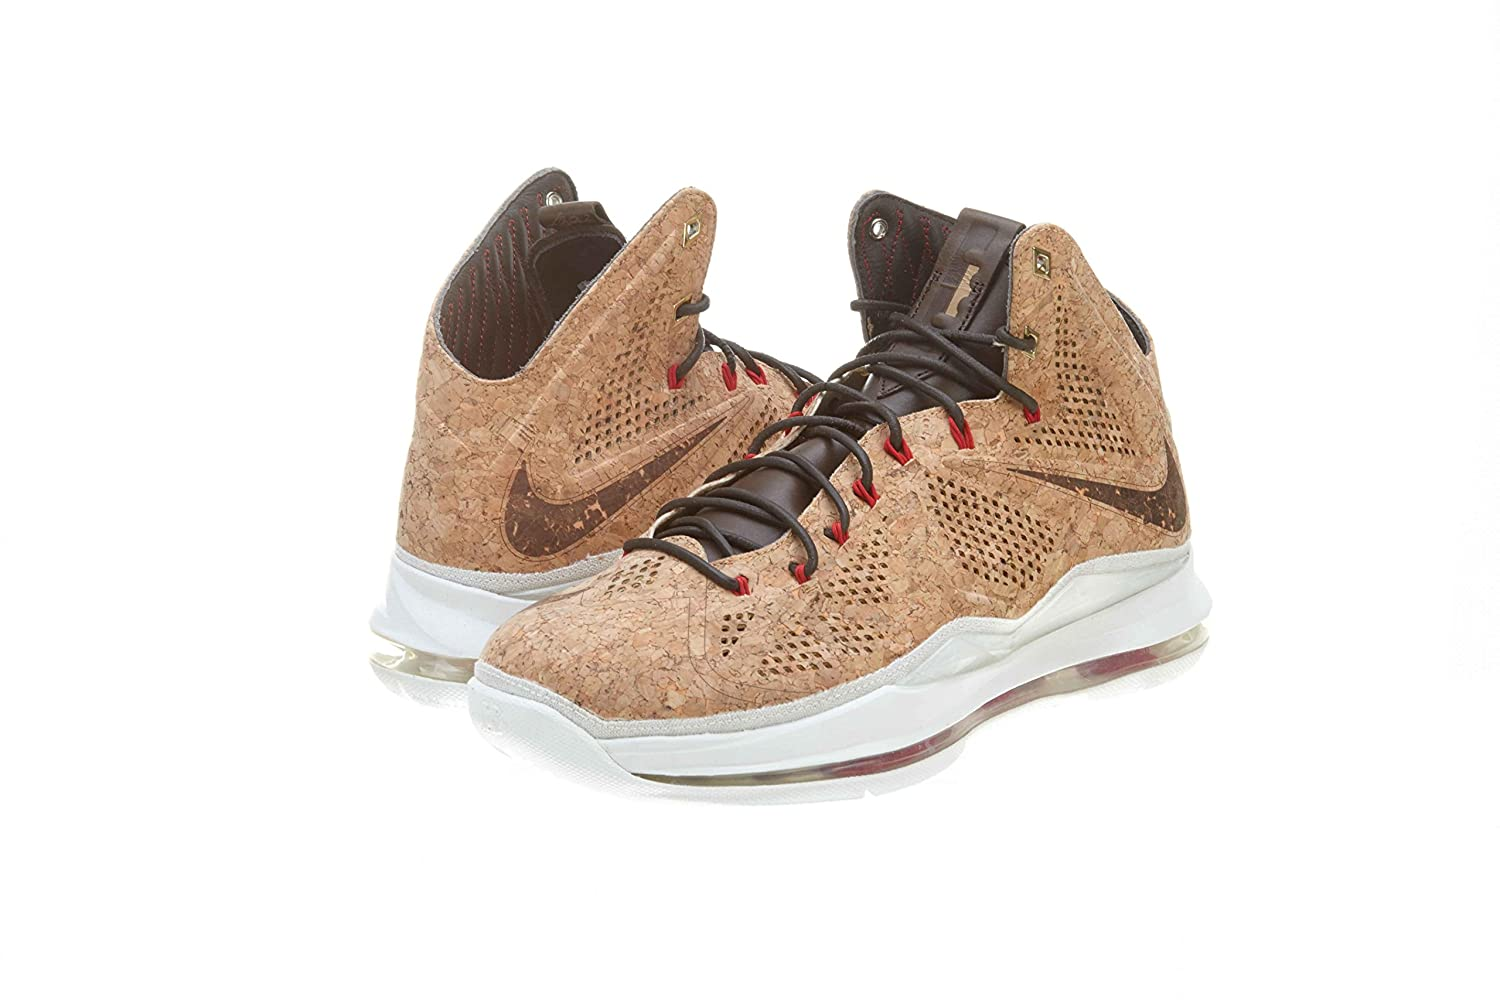 0656fda94ae6f Amazon.com | Lebron X Ext Cork QS Men's Basketball Shoes Classic  Brown/University Red Hazelnut | Basketball